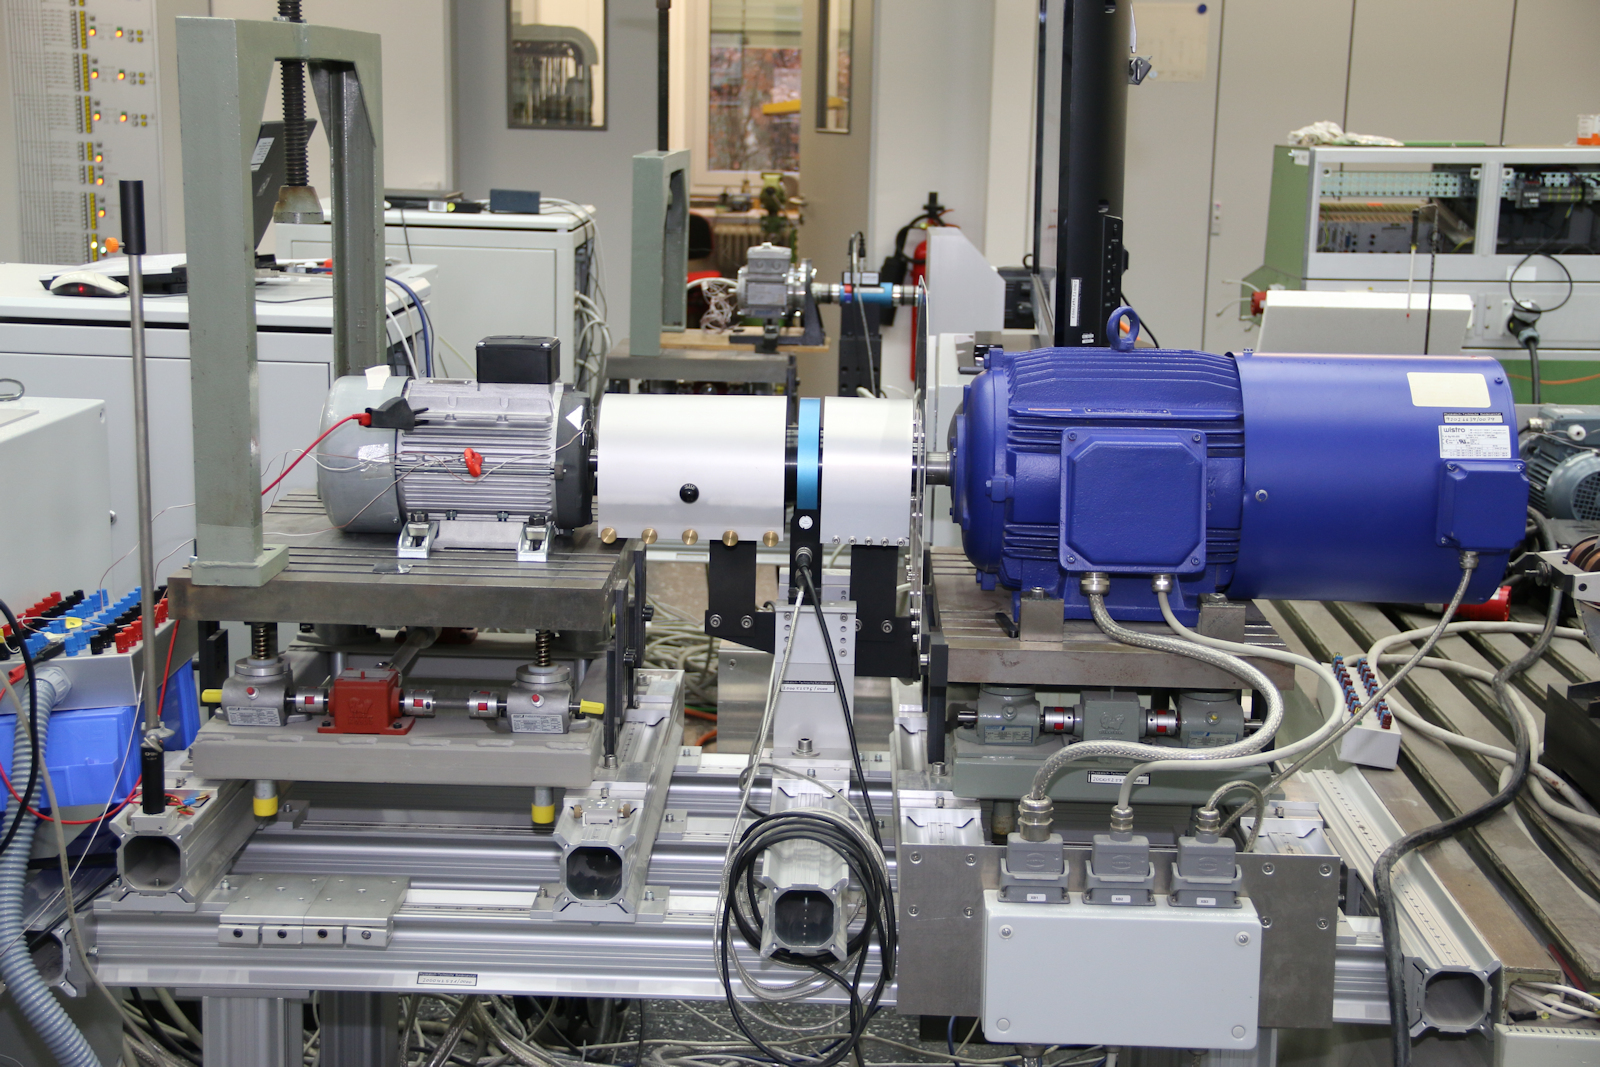 Image of a motor test bench for small machines